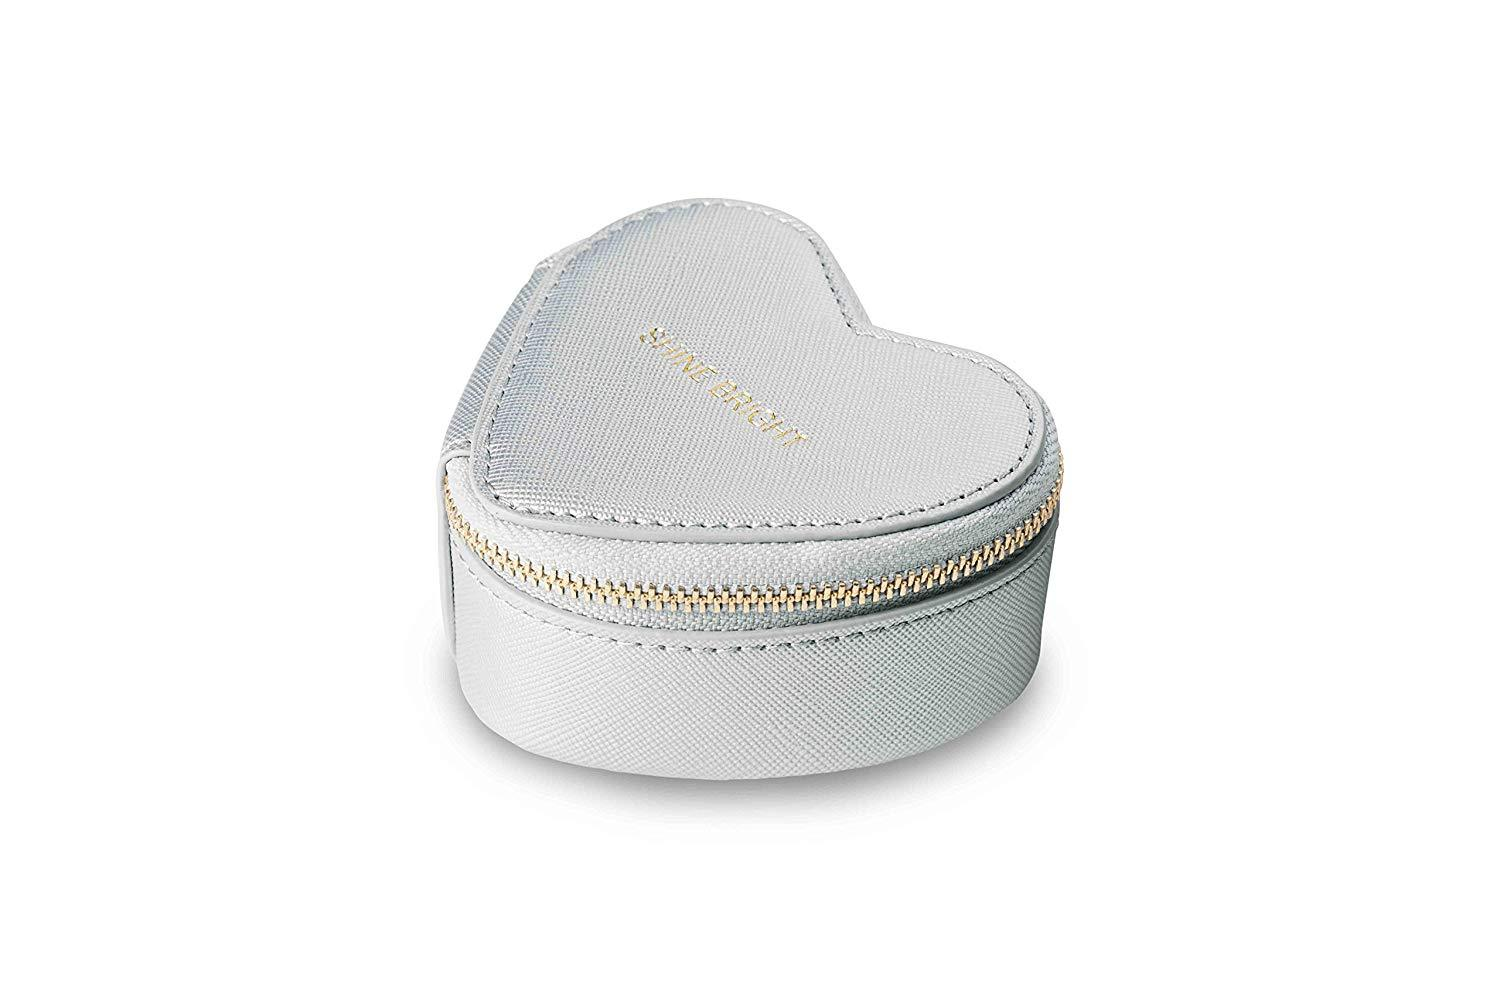 Katie Loxton London Small Heart Travel  Metallic Silver Jewellery Case - Stockpoint Apparel Outlet